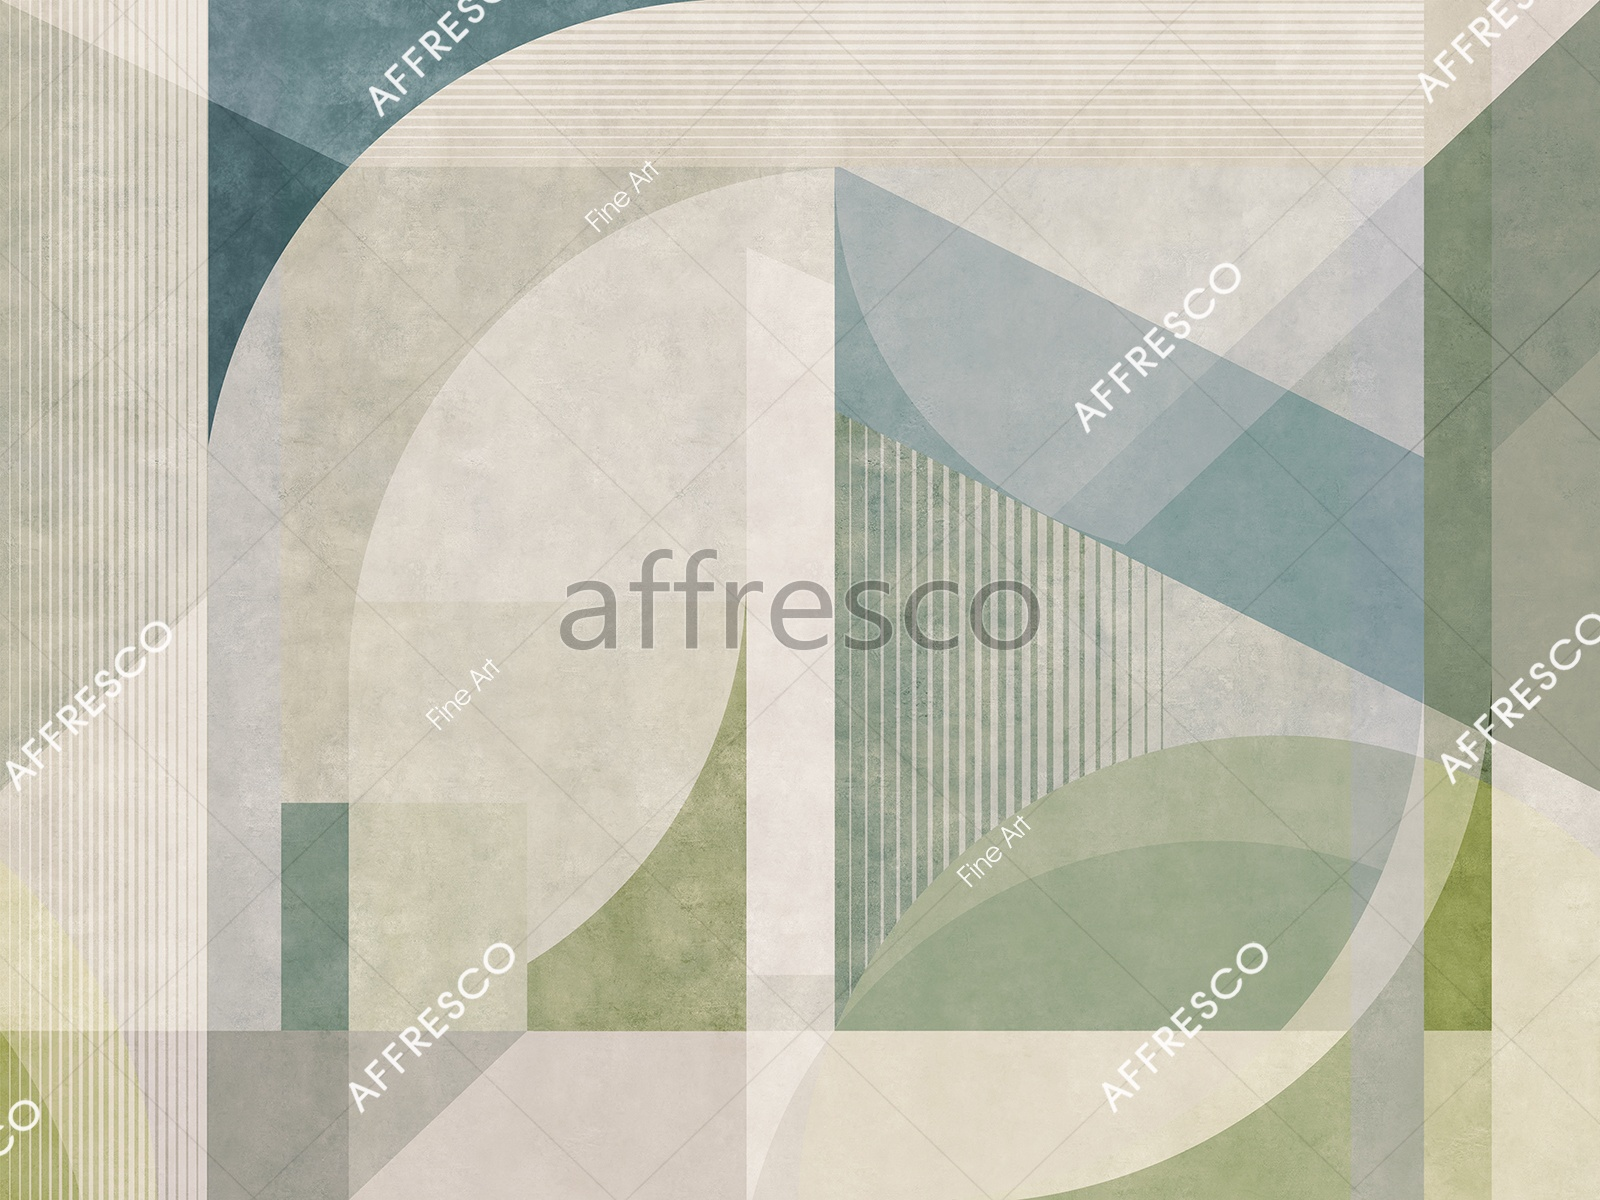 RE882-COL4 | Fine Art | Affresco Factory